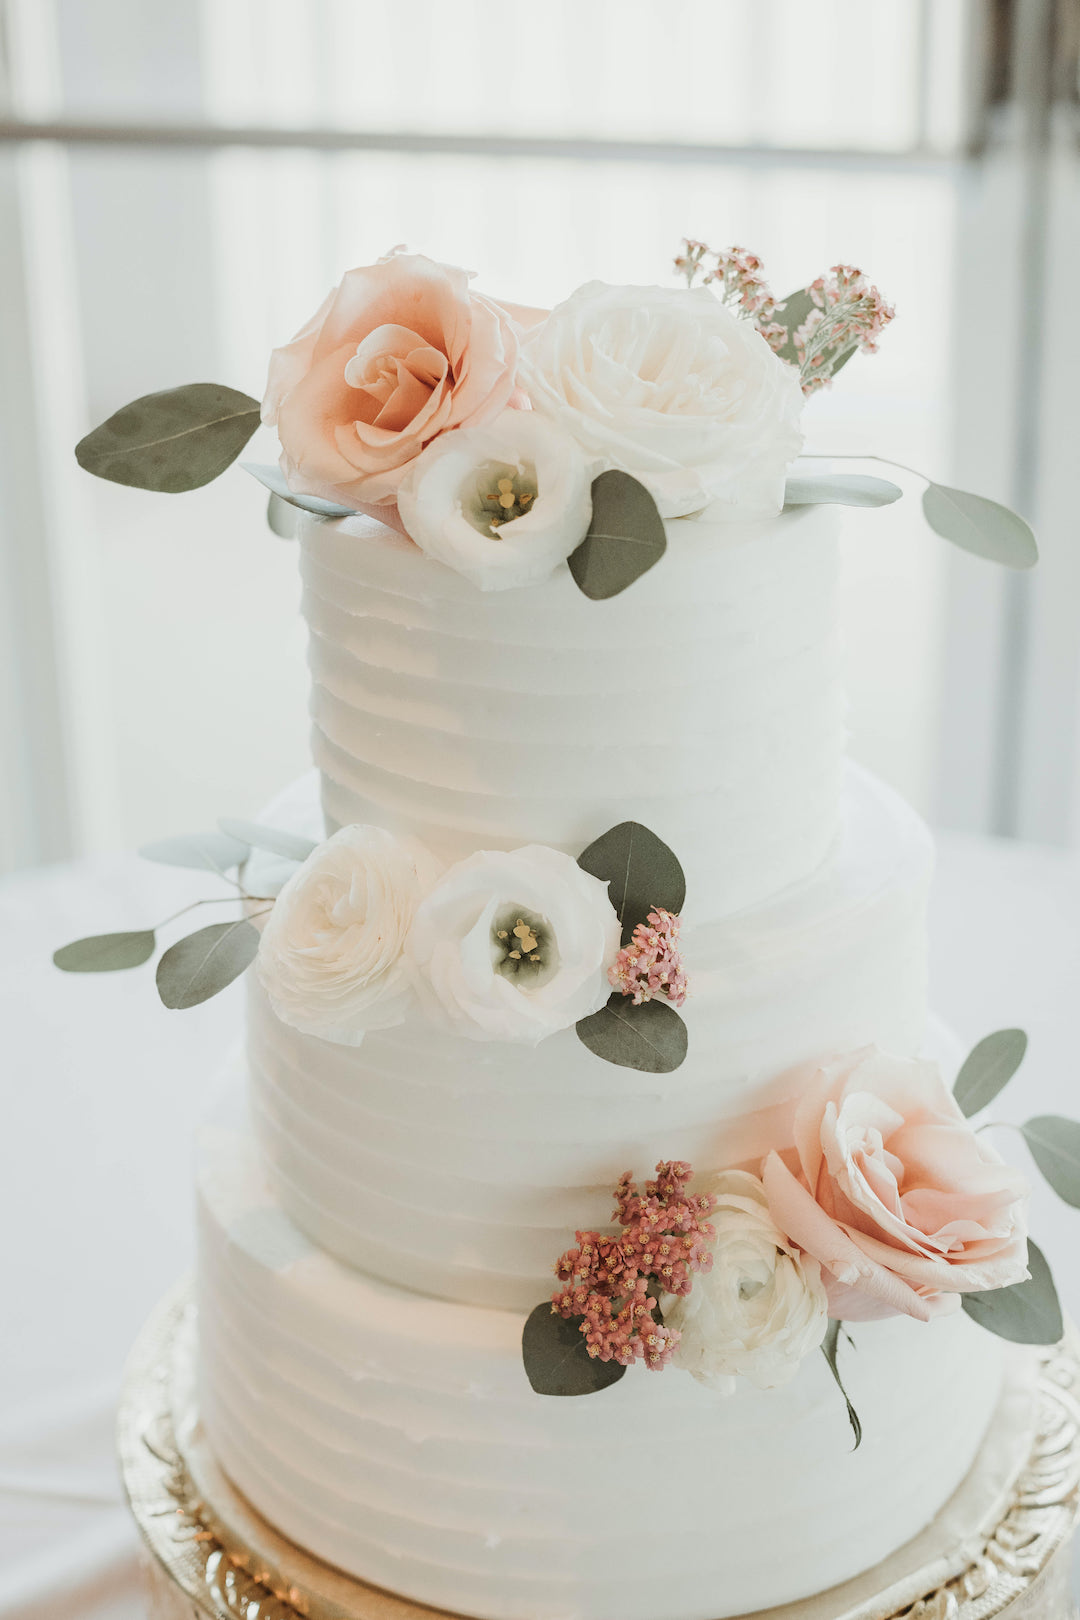 Classic floral wedding cake: Romantic Country Club Soiree by Juniper Weddings featured on Nashville Bride Guide